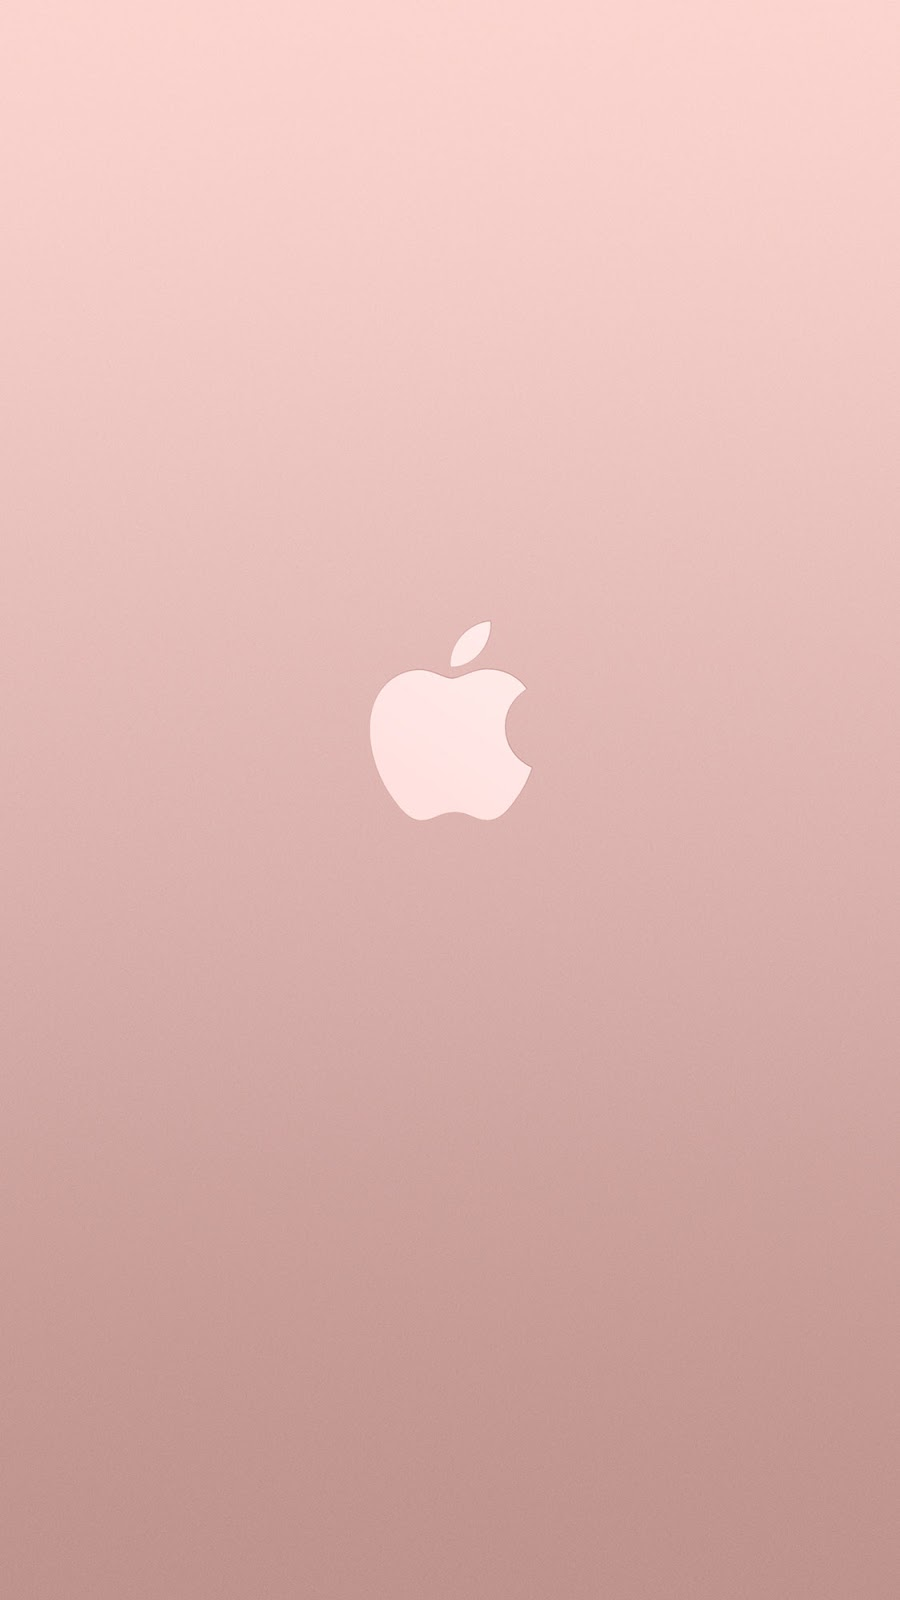 Iphone and android wallpapers 22 beautiful rose gold - Iphone wallpaper rose gold ...